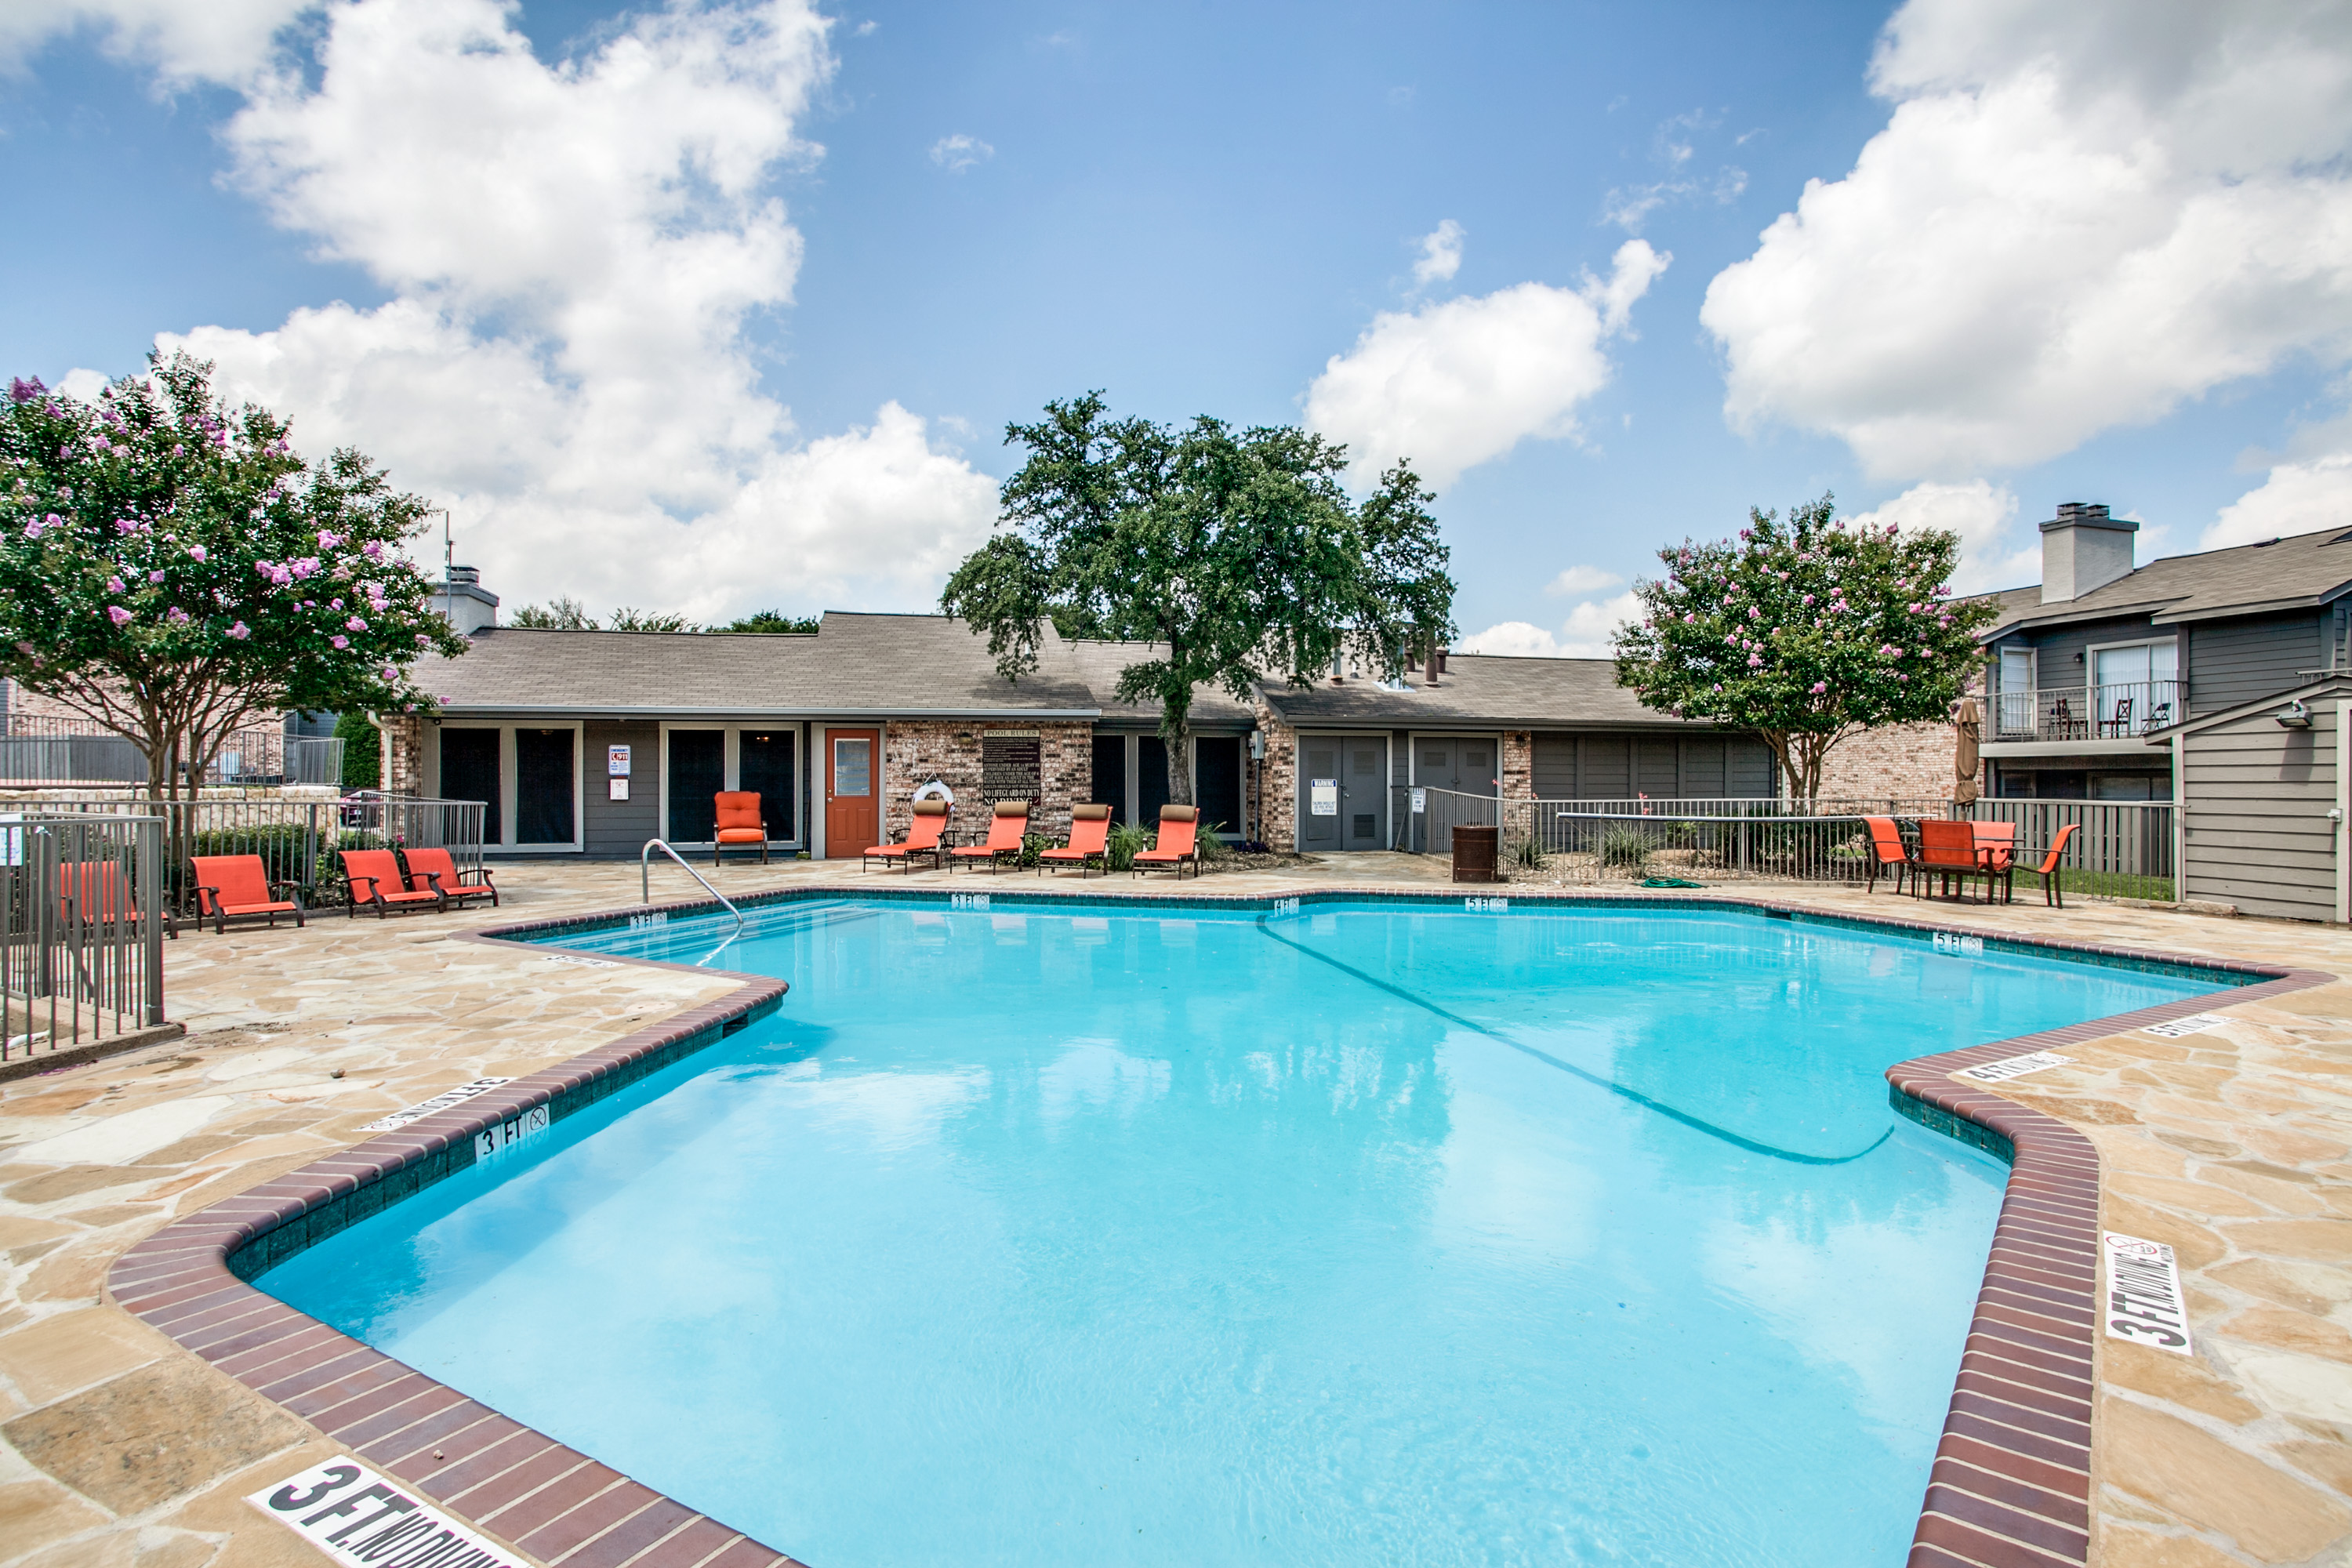 1 And 2 Bedroom Apartments For Rent In Garland Tx